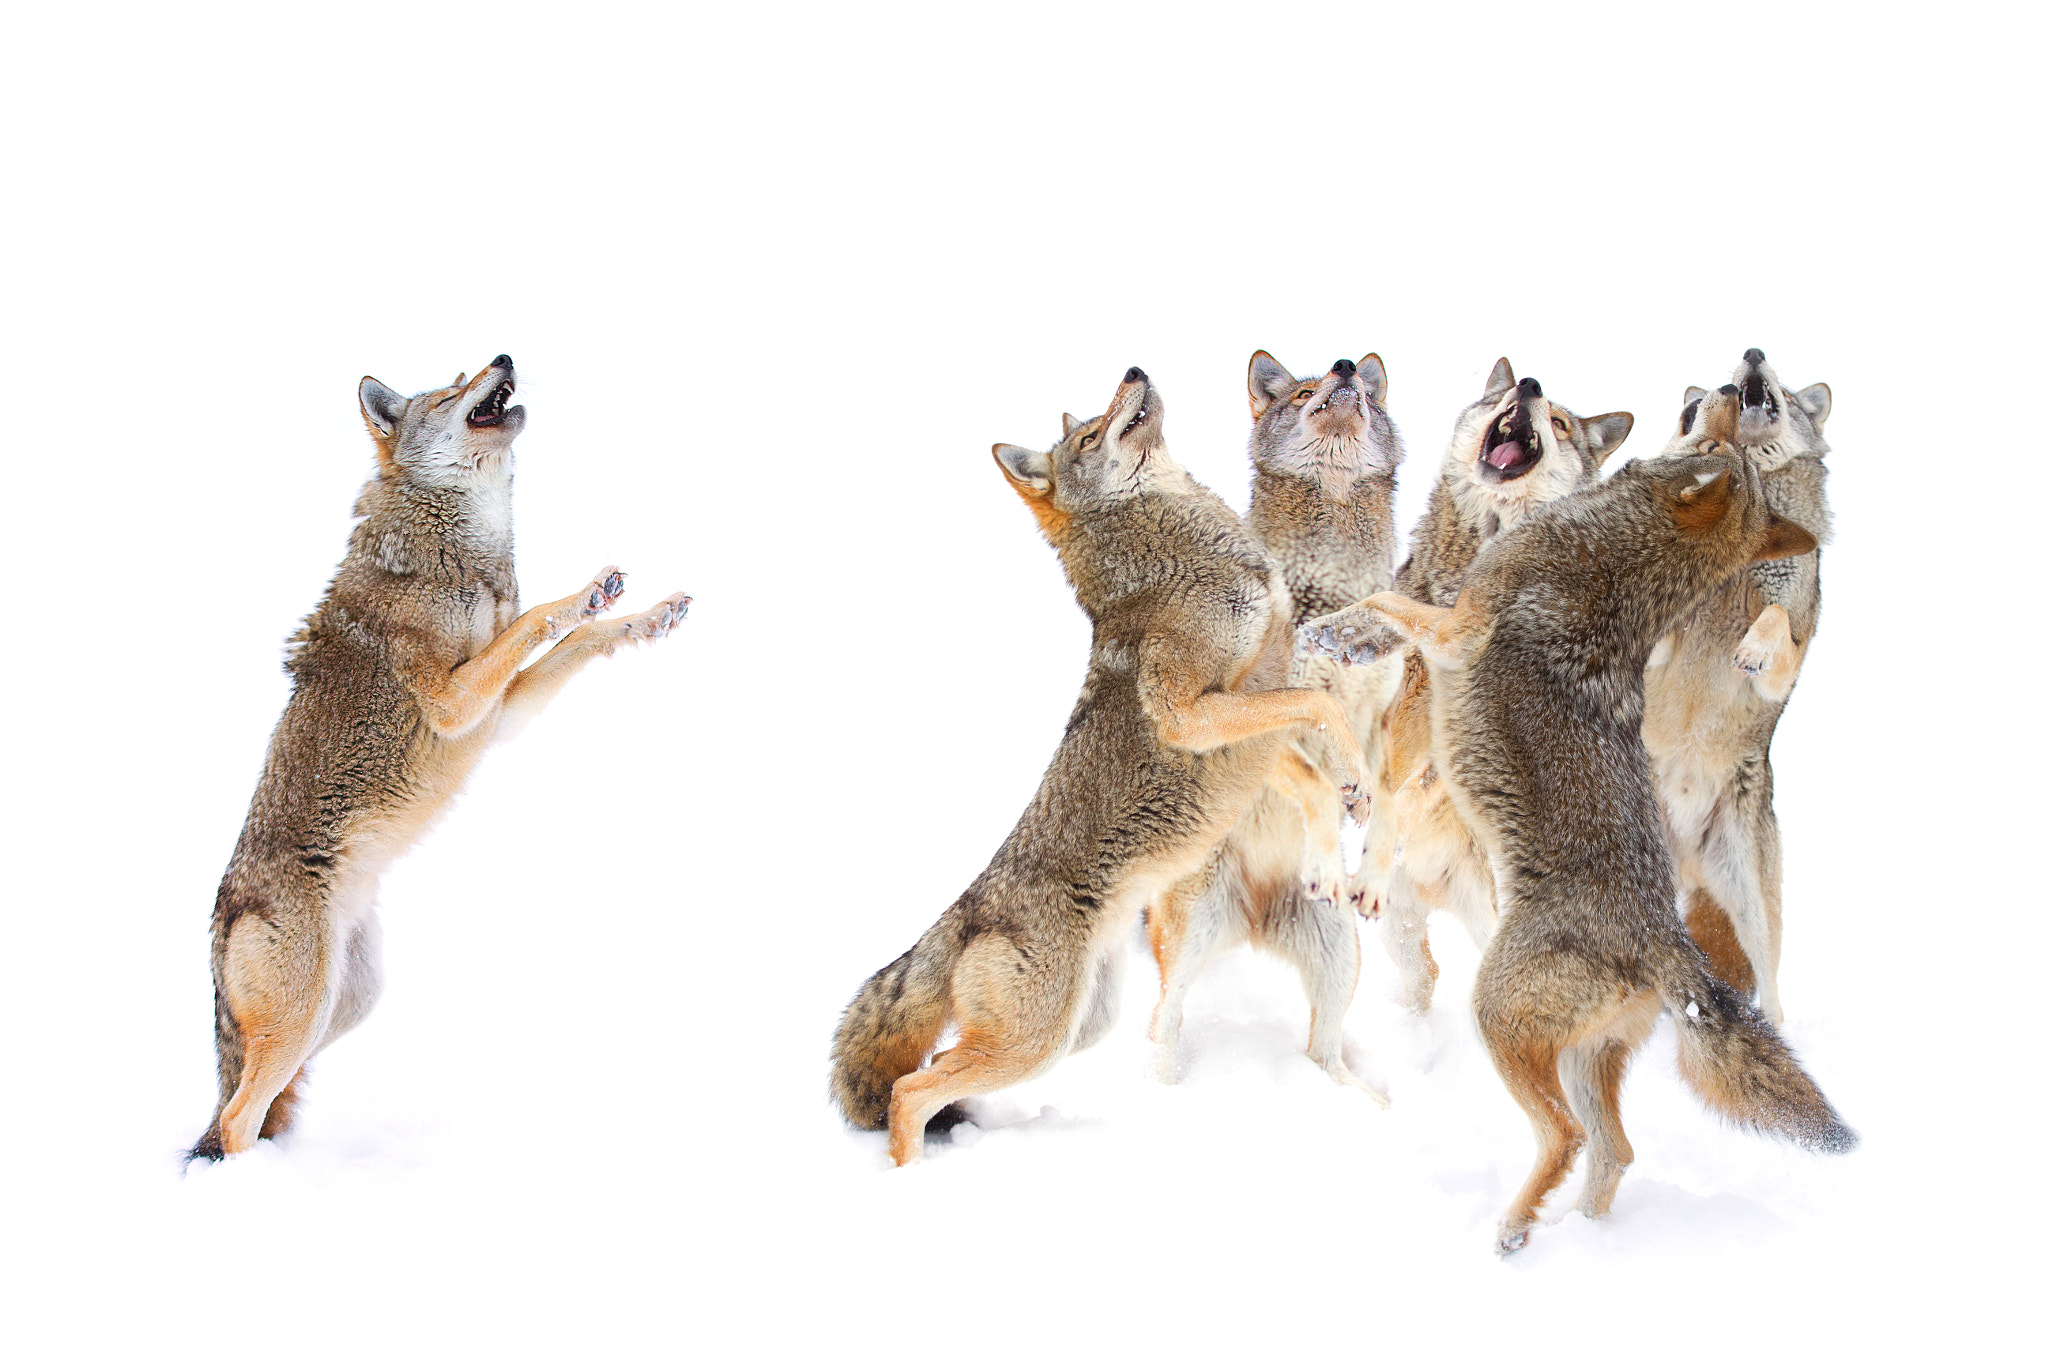 Photograph The Choir - Coyotes by Jim Cumming on 500px